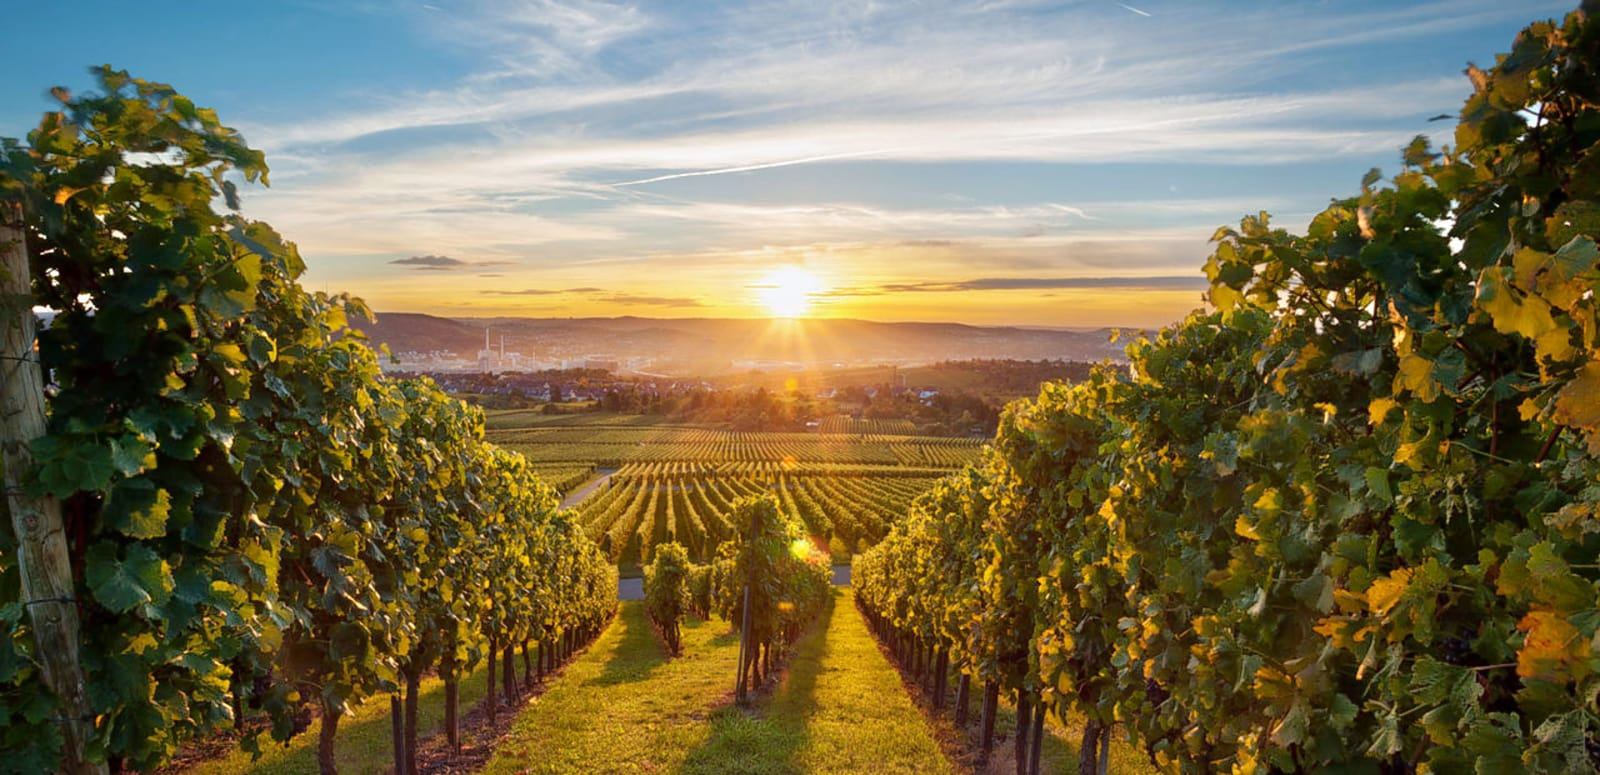 1488862812_wine-tours-feature-image.jpg